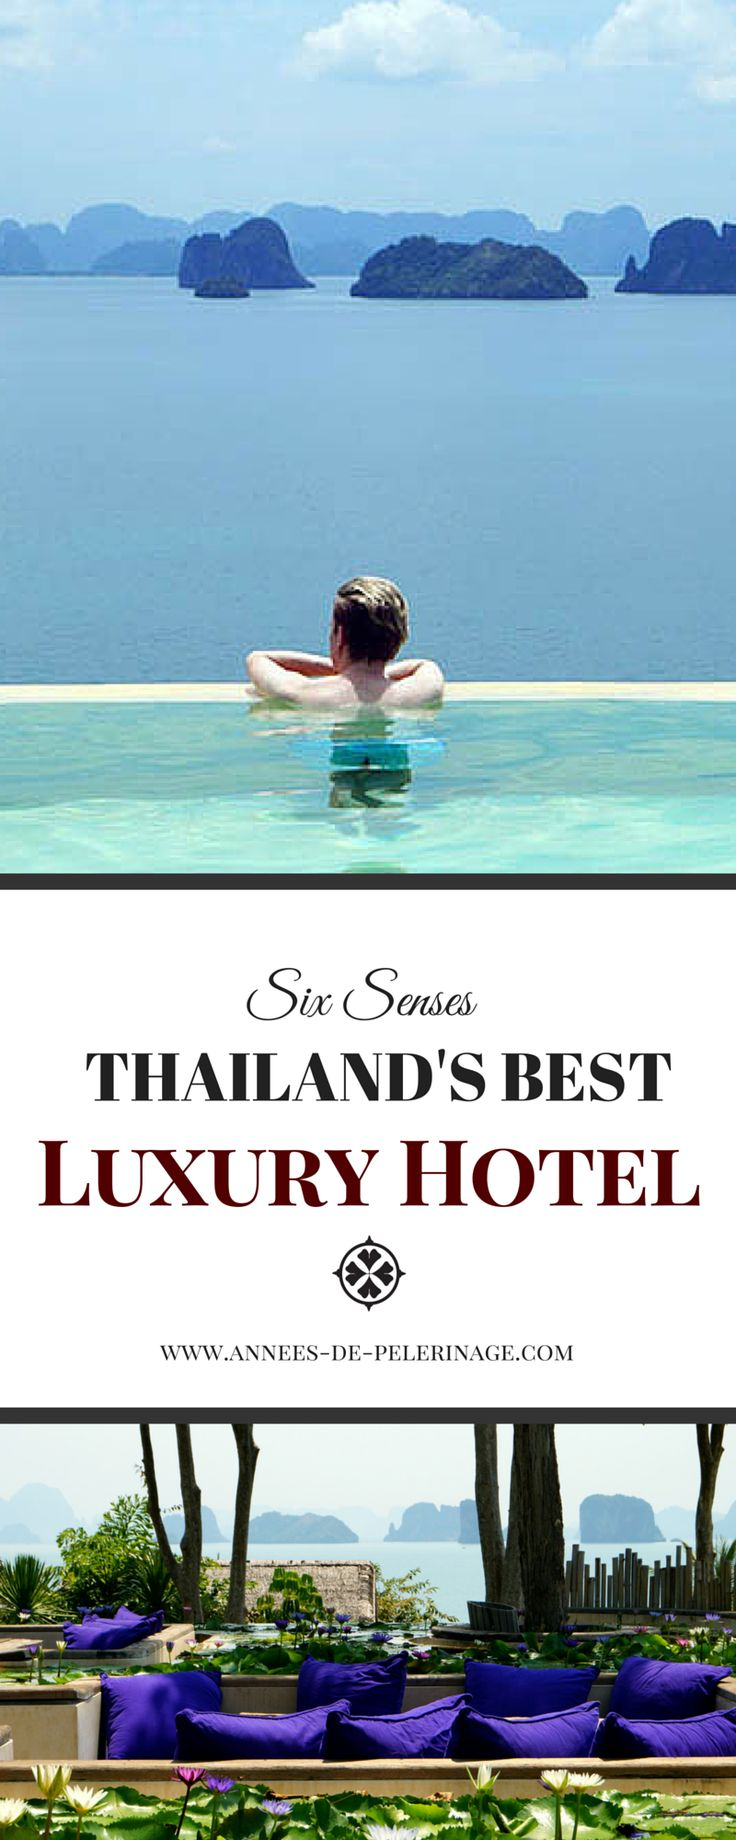 The Six Senses hotel on remote Koh Yao Noi might be Thailand's best luxury hotel. The setting certainly is more than perfect